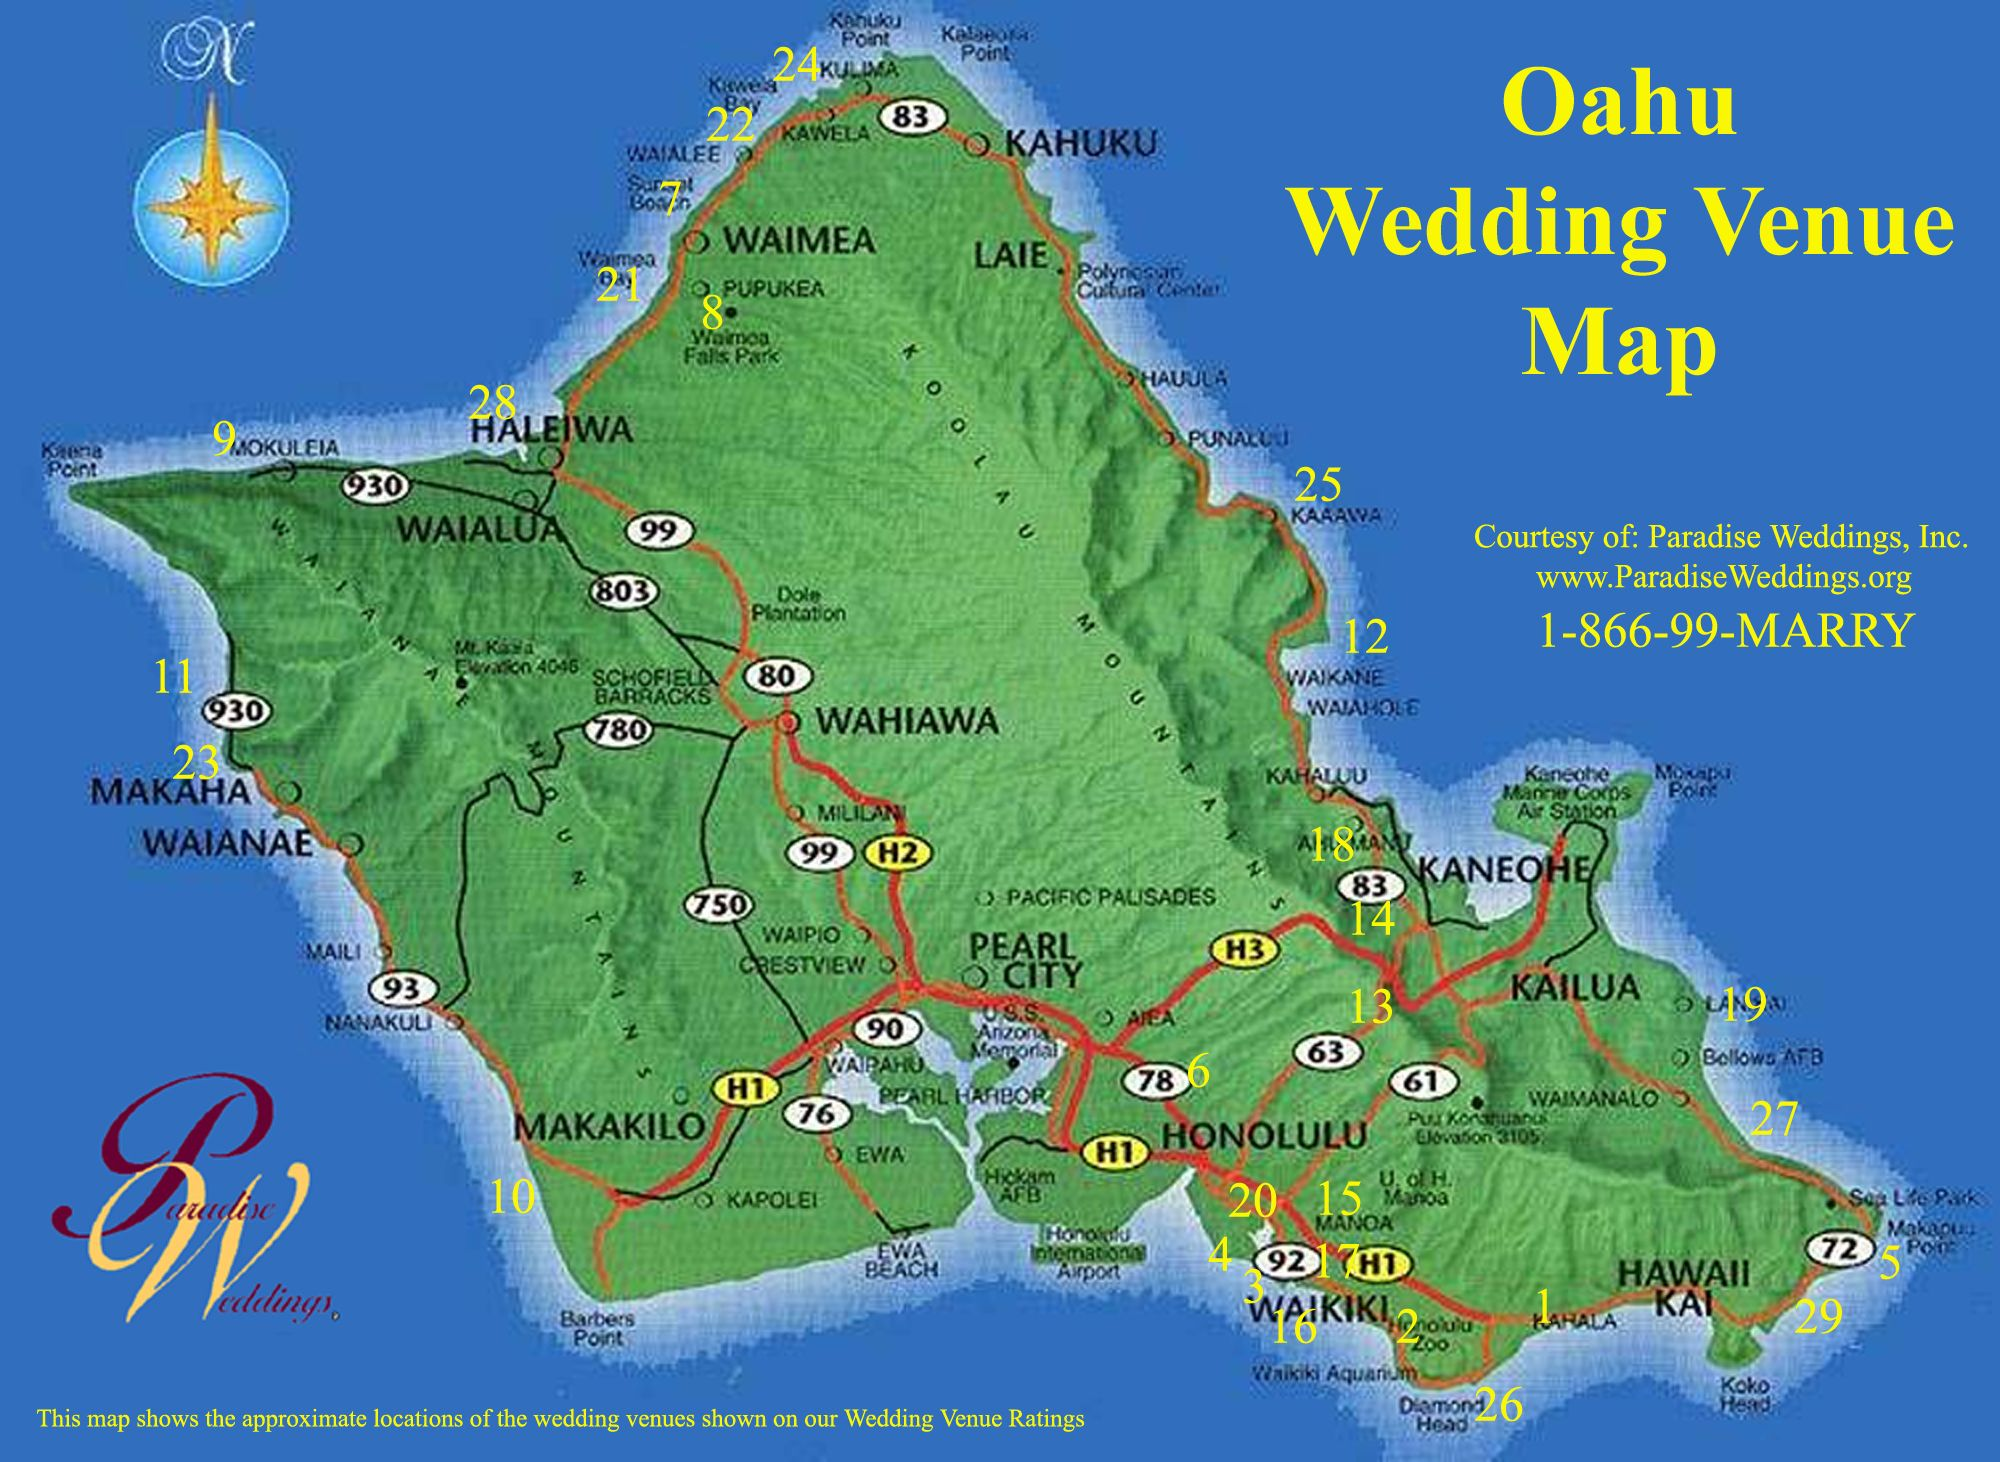 Oahu Hawaii  Oahu Wedding Venue Map  Oahu Hawaii